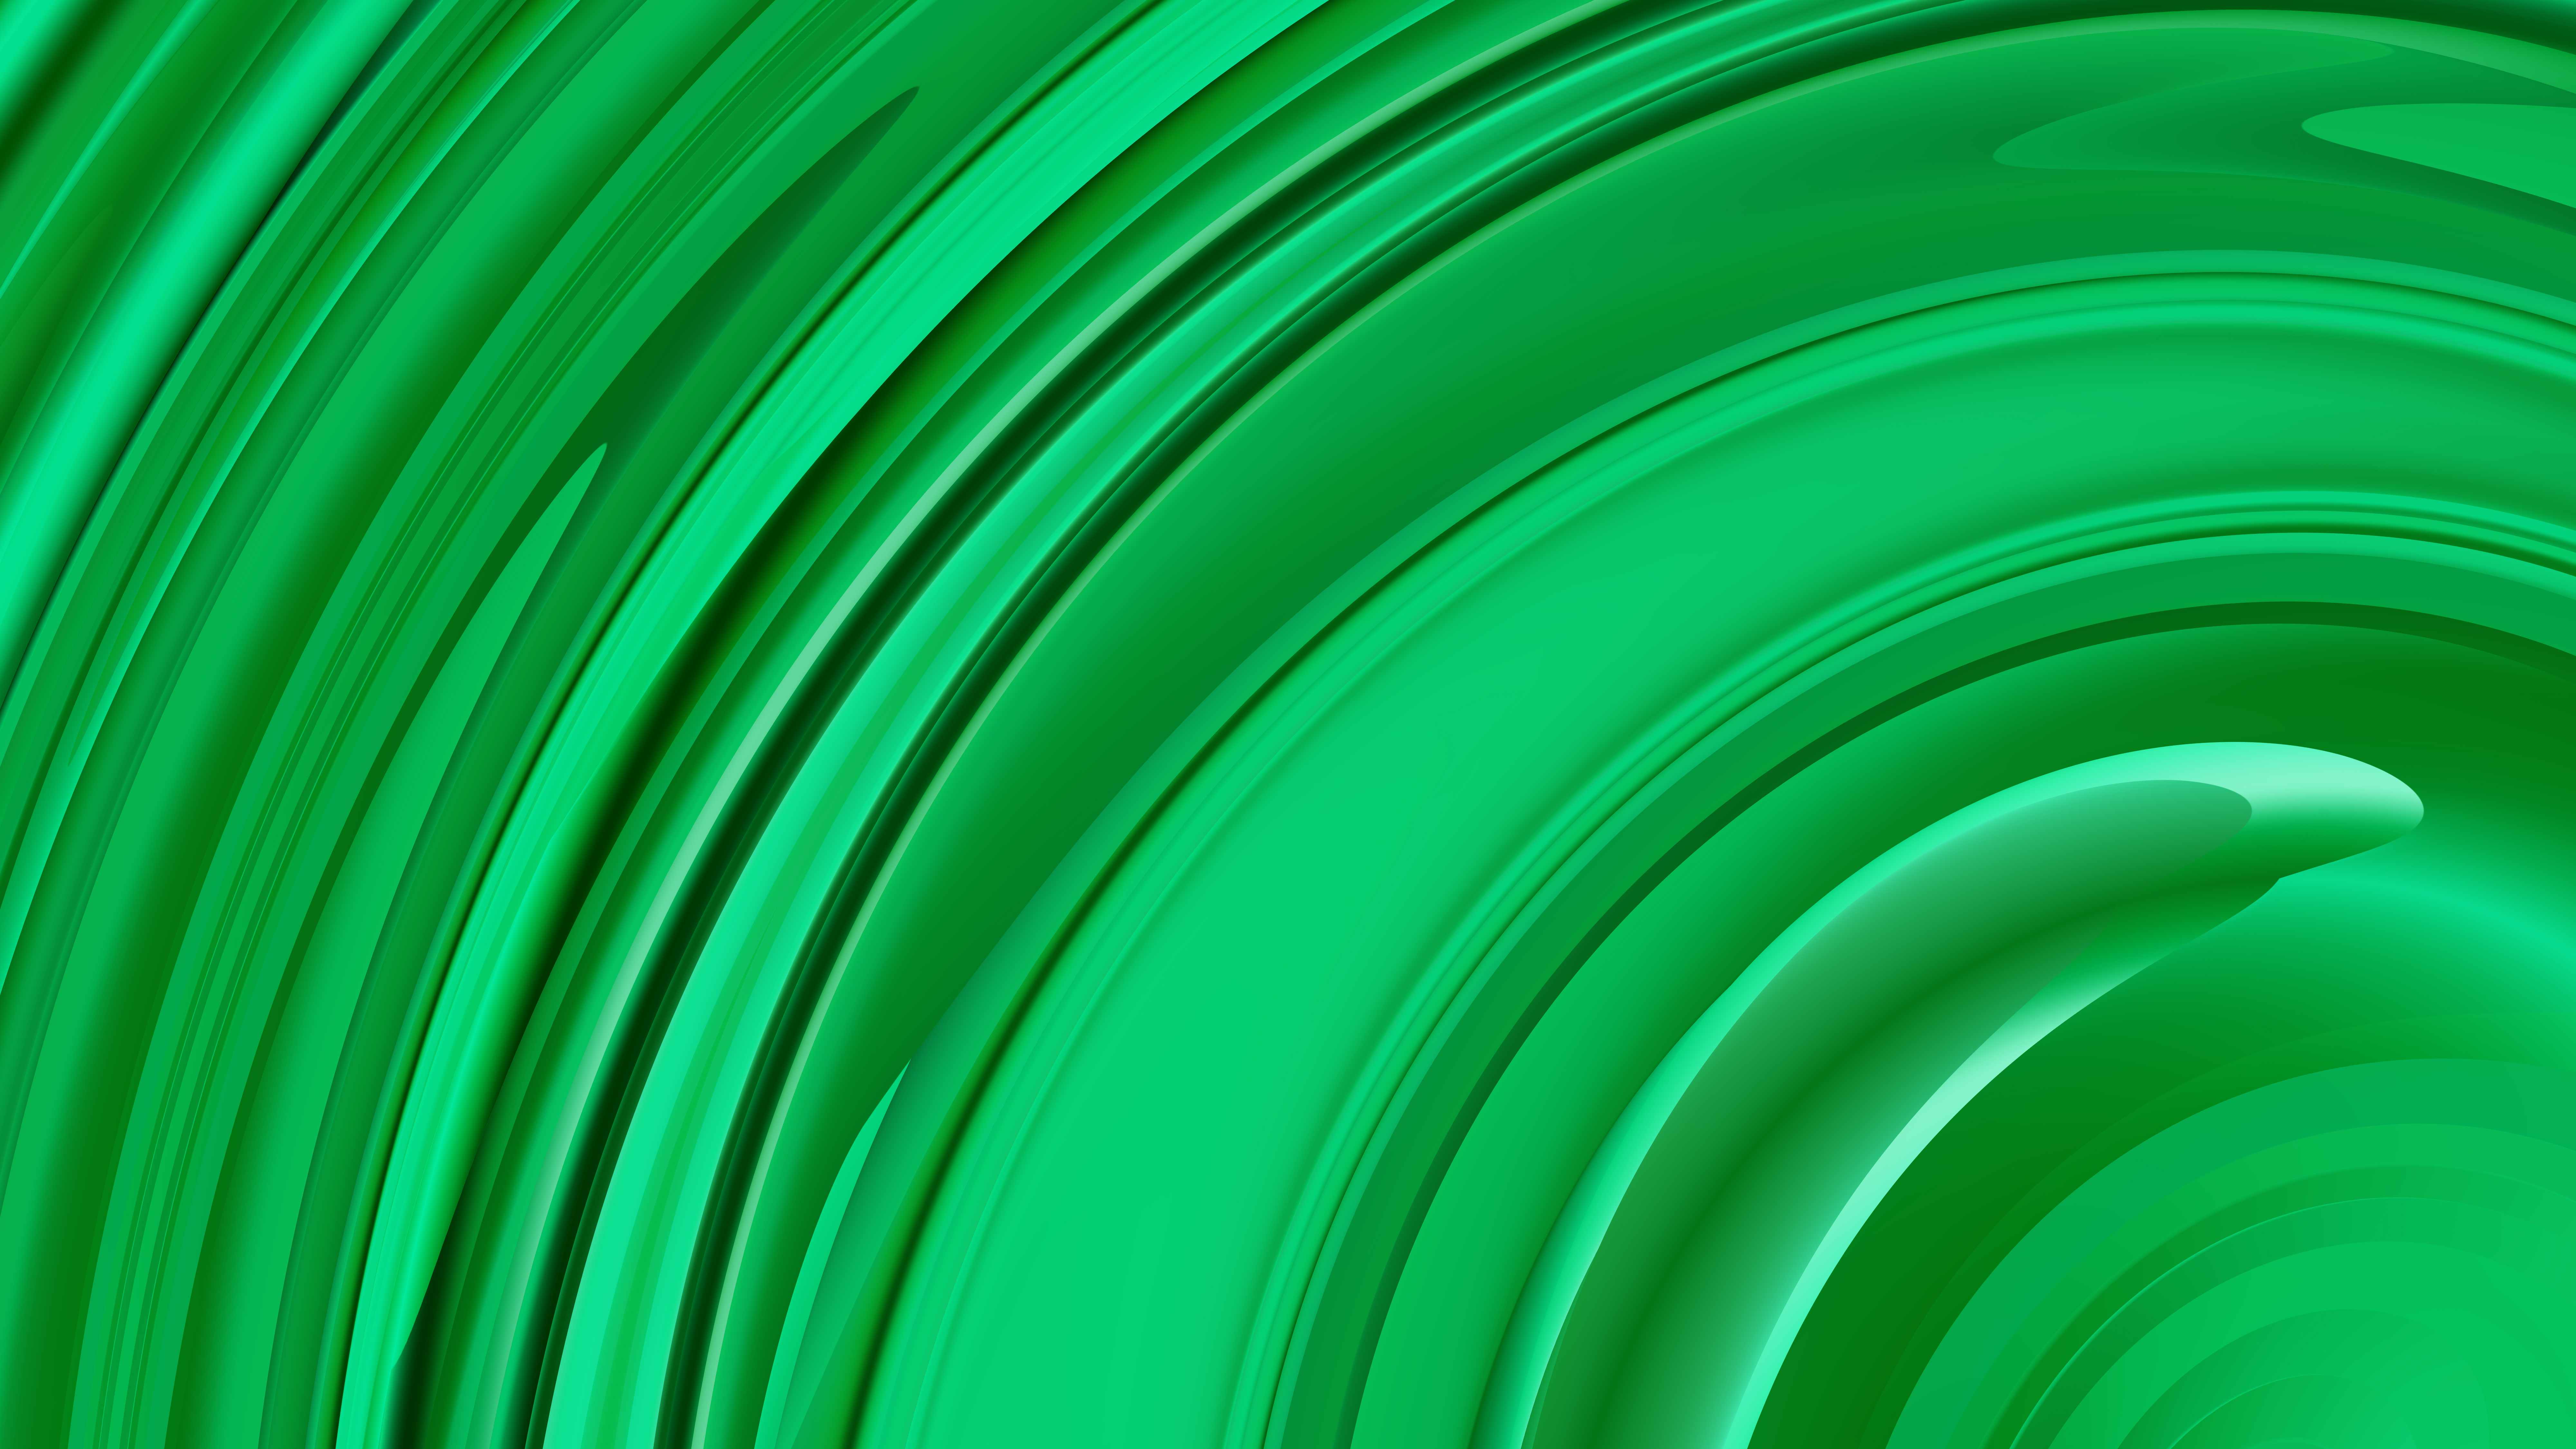 Abstract Emerald Green Graphic Background 8000x4500